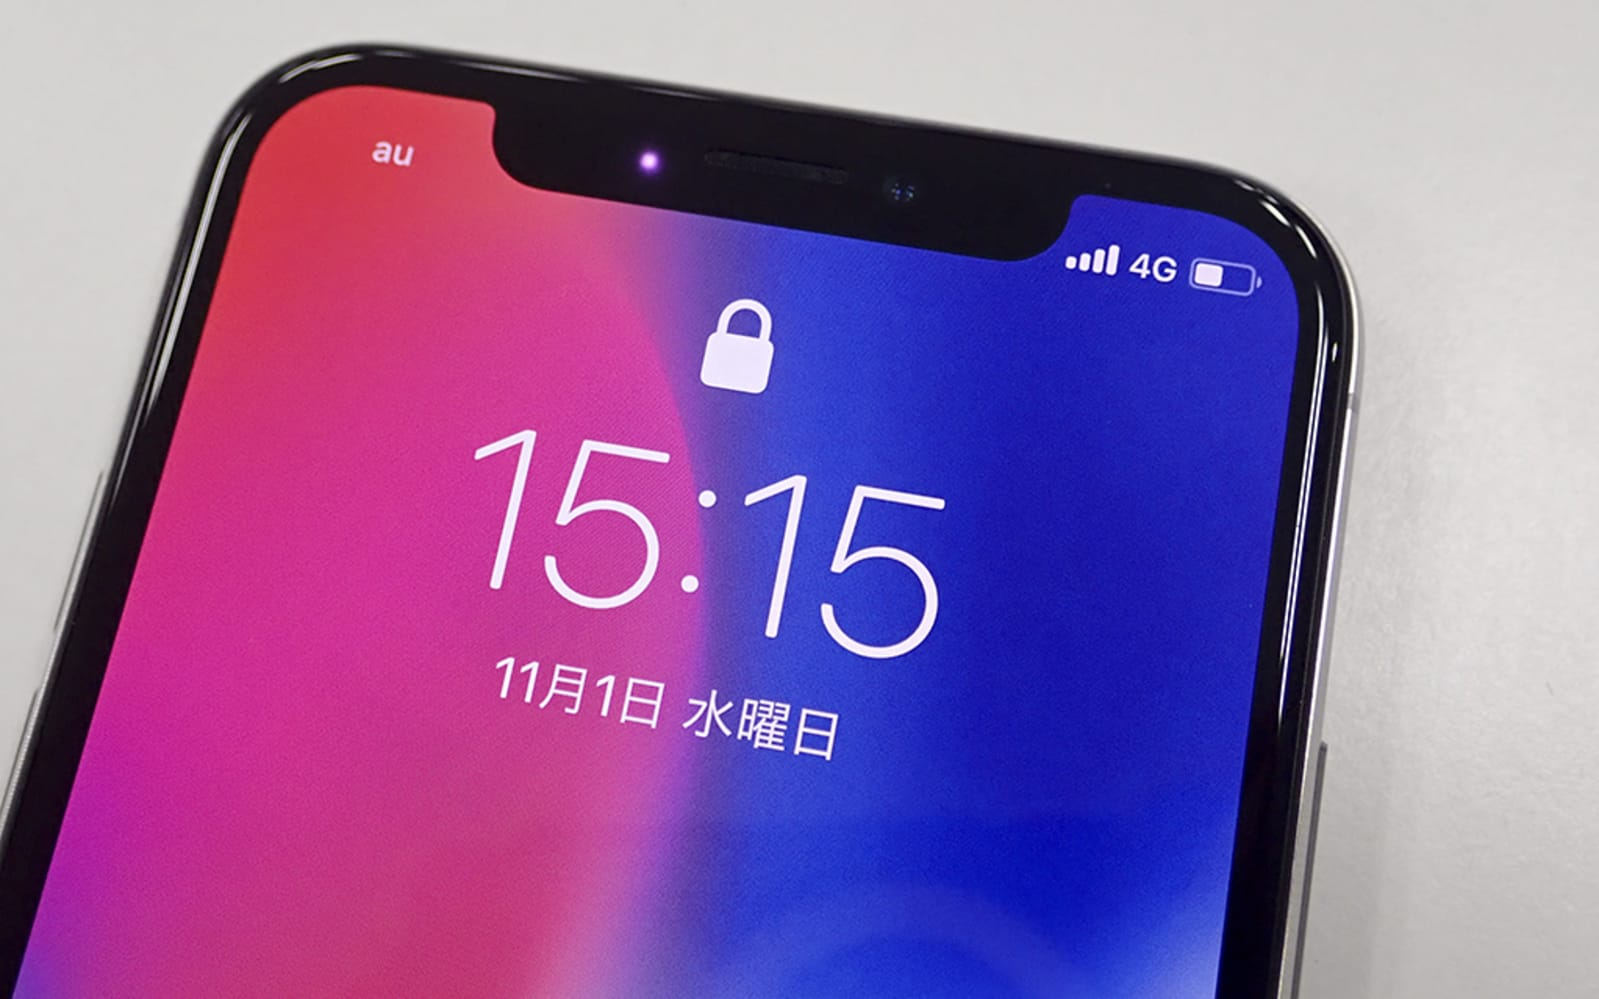 More and more authorities in the US are getting access to an affordable  device that can unlock iPhones, according to Motherboard.